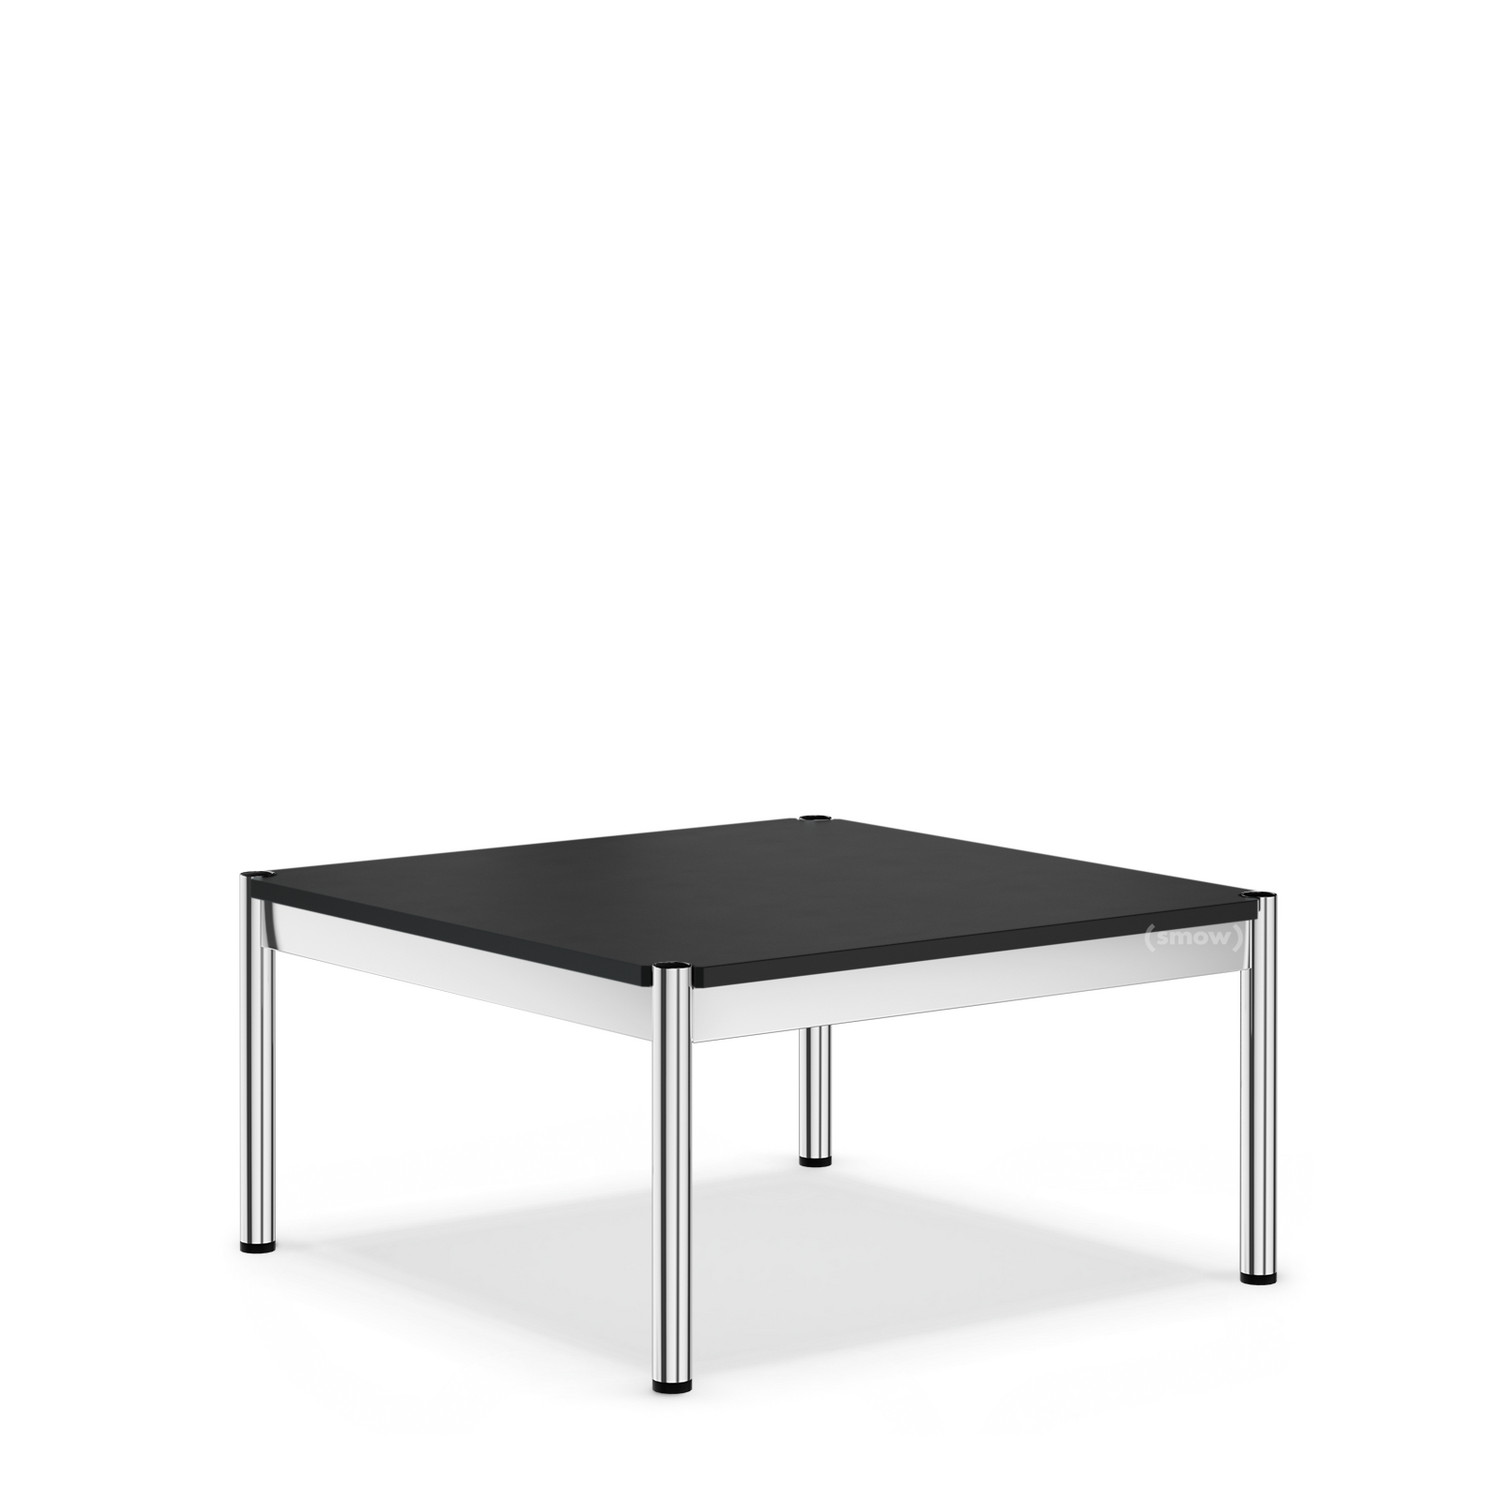 Usm Haller Couchtisch Usm Haller Coffee Table 75 X 75 Cm Linoleum Nero By Fritz